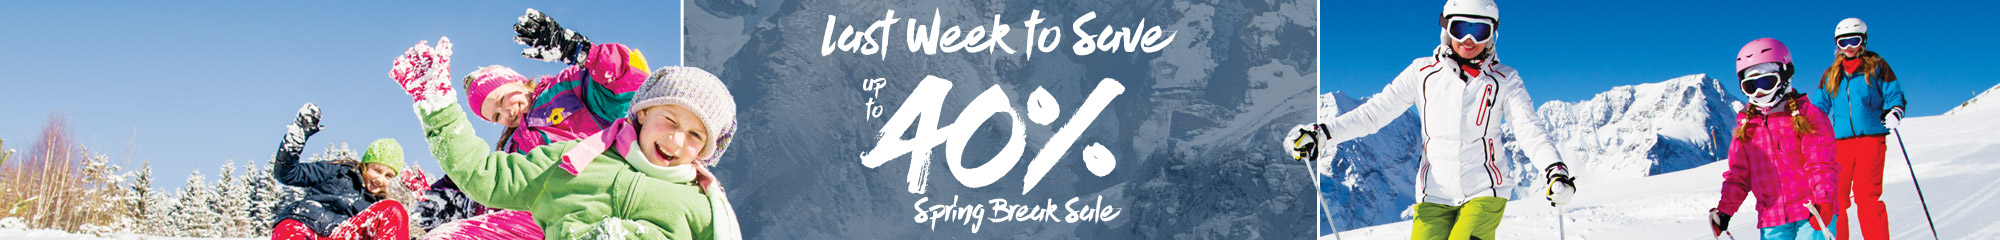 Spring Break Sale - Save up to 40%